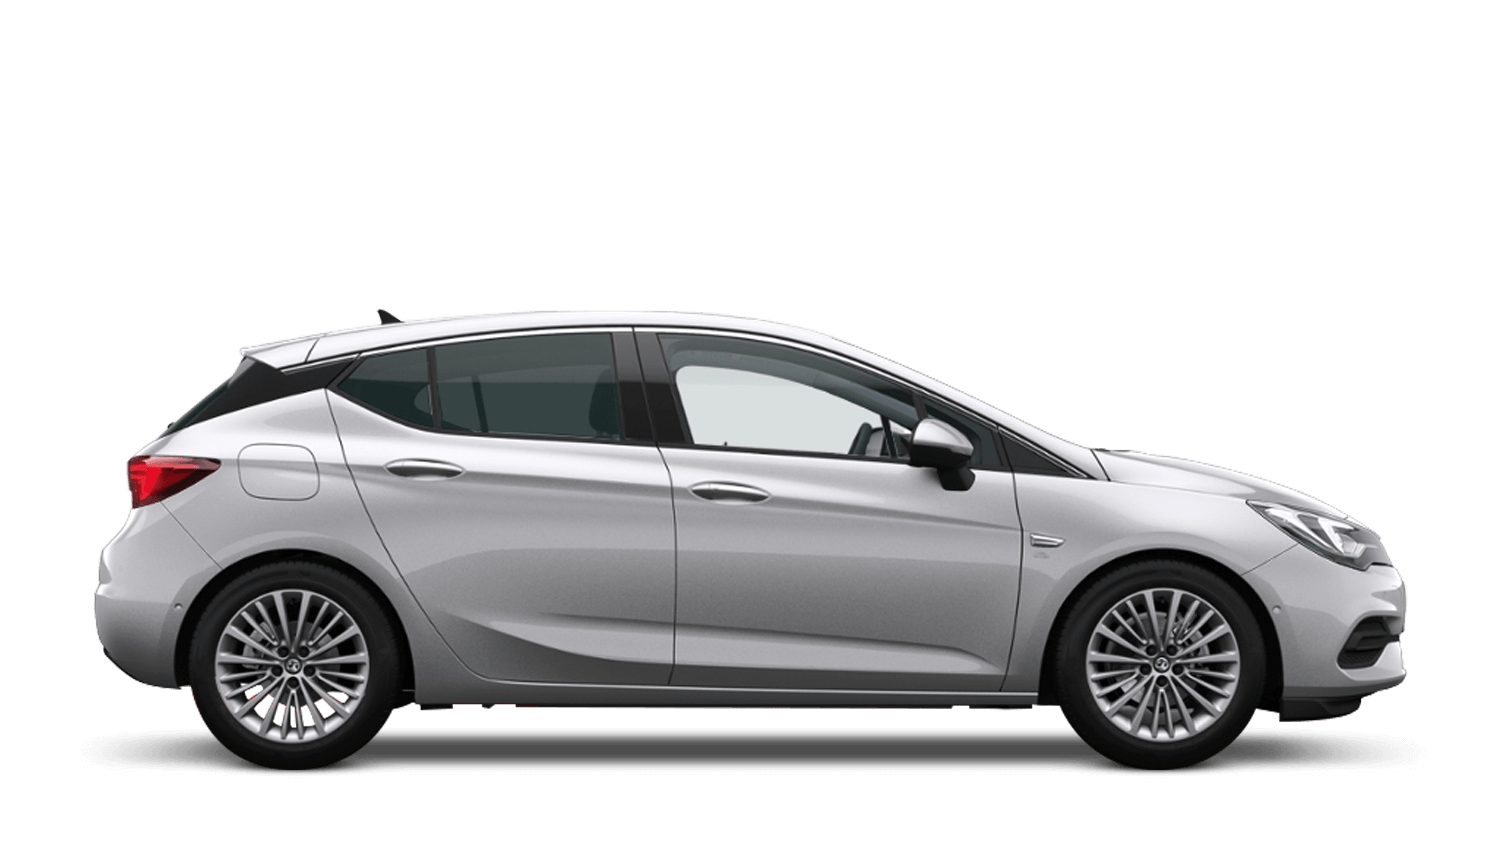 Sovereign Silver (Metallic) New Vauxhall Astra